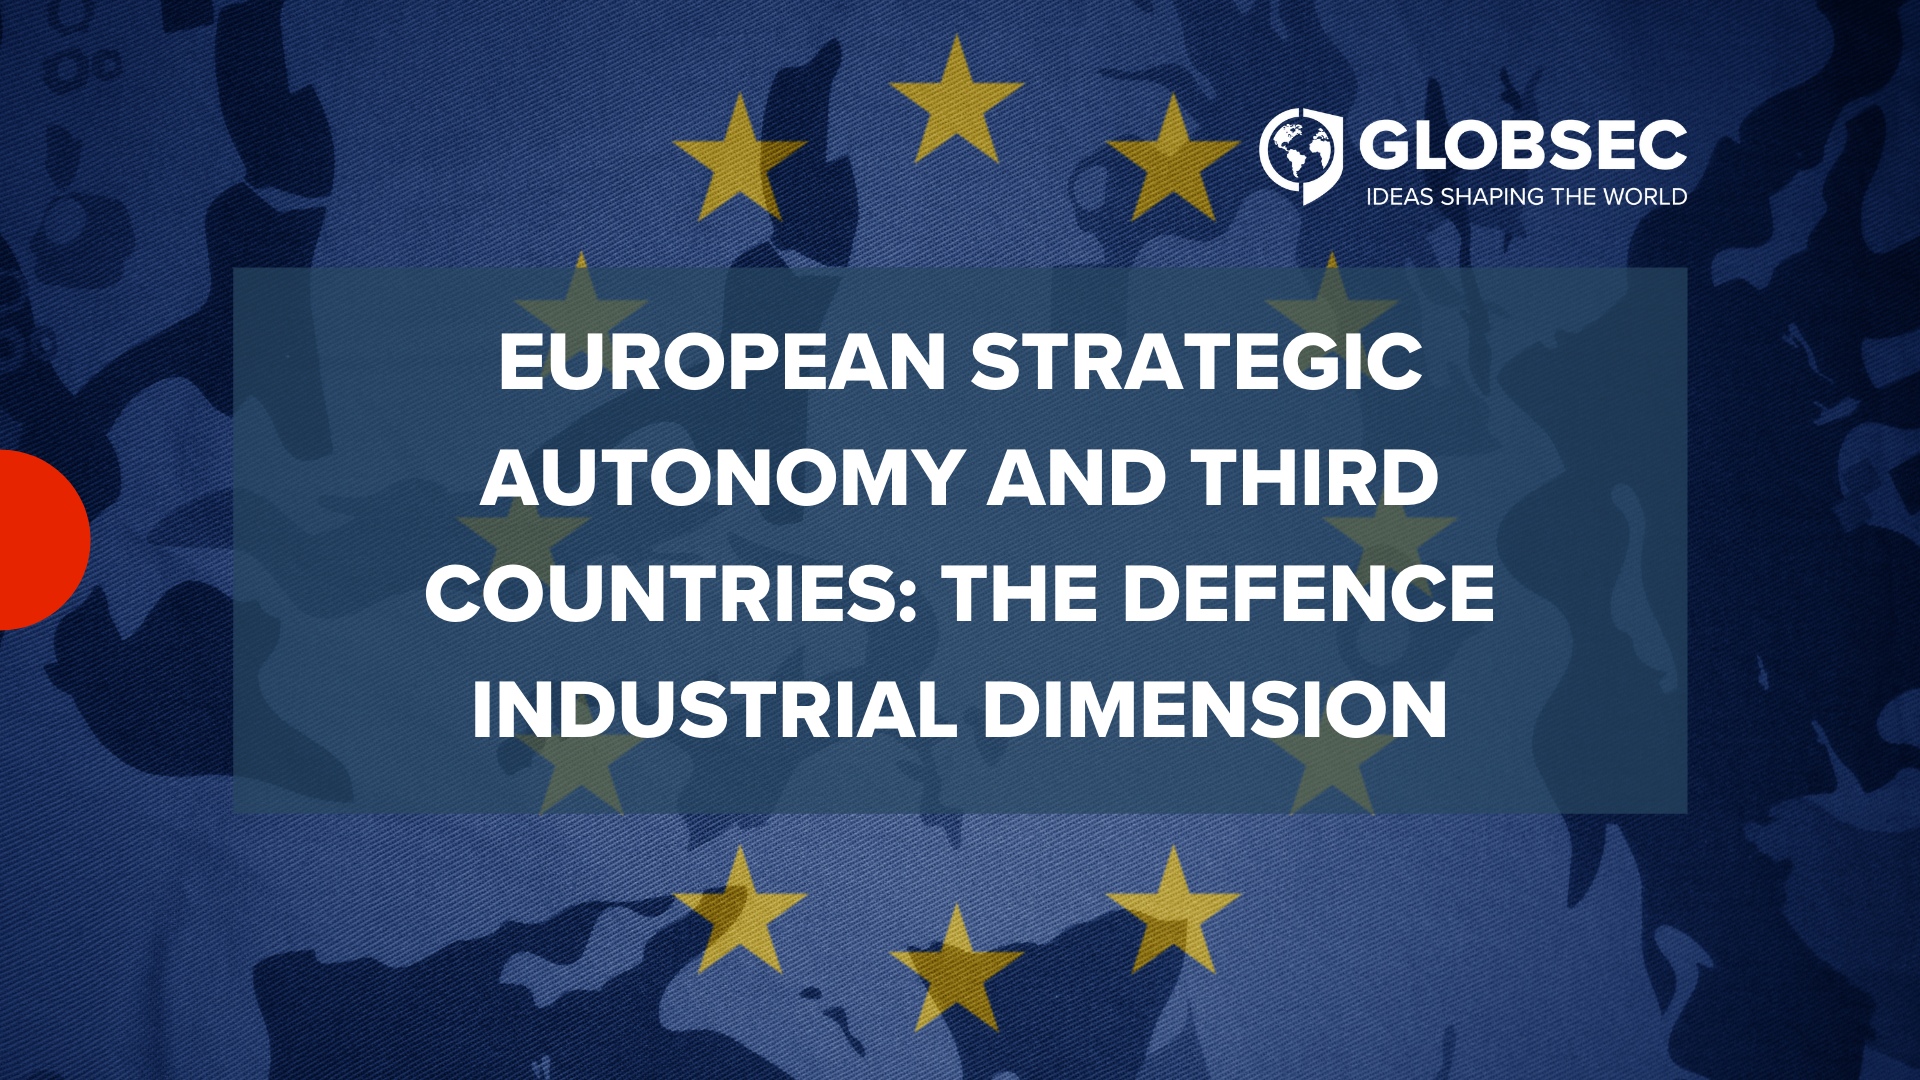 European Strategic Autonomy and Third Countries: the Defence Industrial Dimension